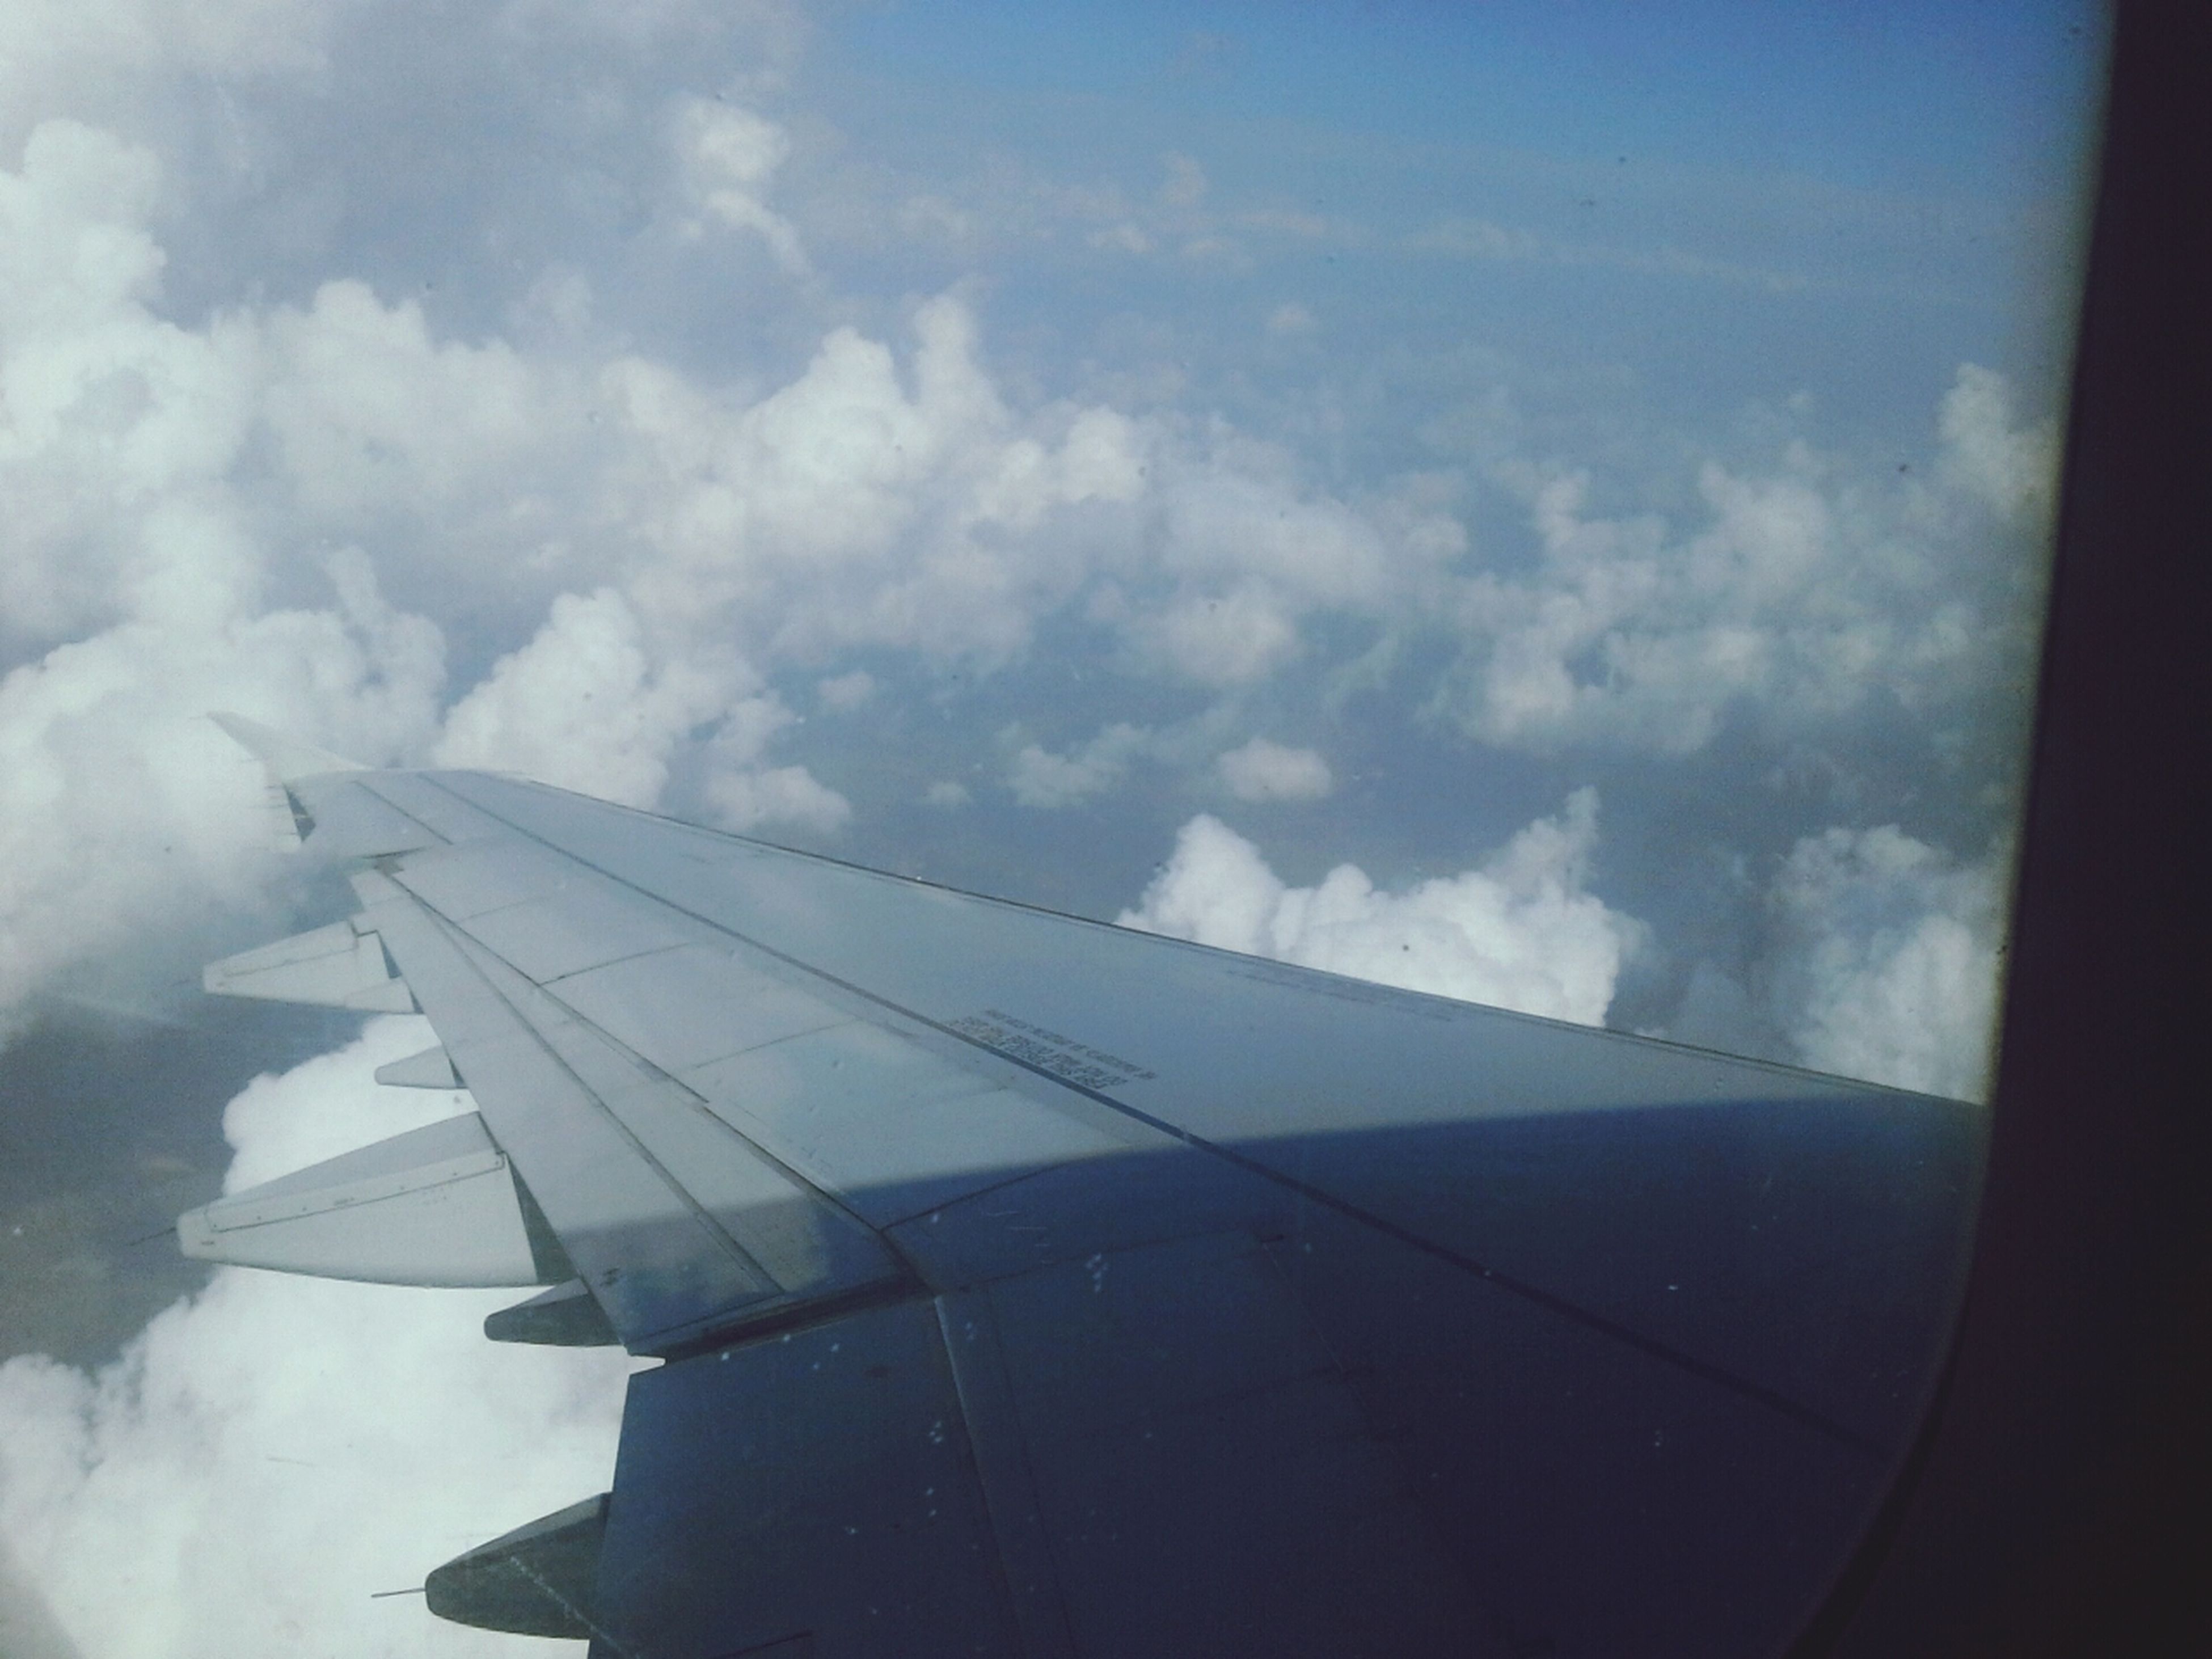 airplane, air vehicle, aircraft wing, sky, transportation, mode of transport, flying, cloud - sky, part of, cropped, cloud, travel, cloudy, built structure, aerial view, architecture, mid-air, journey, day, building exterior